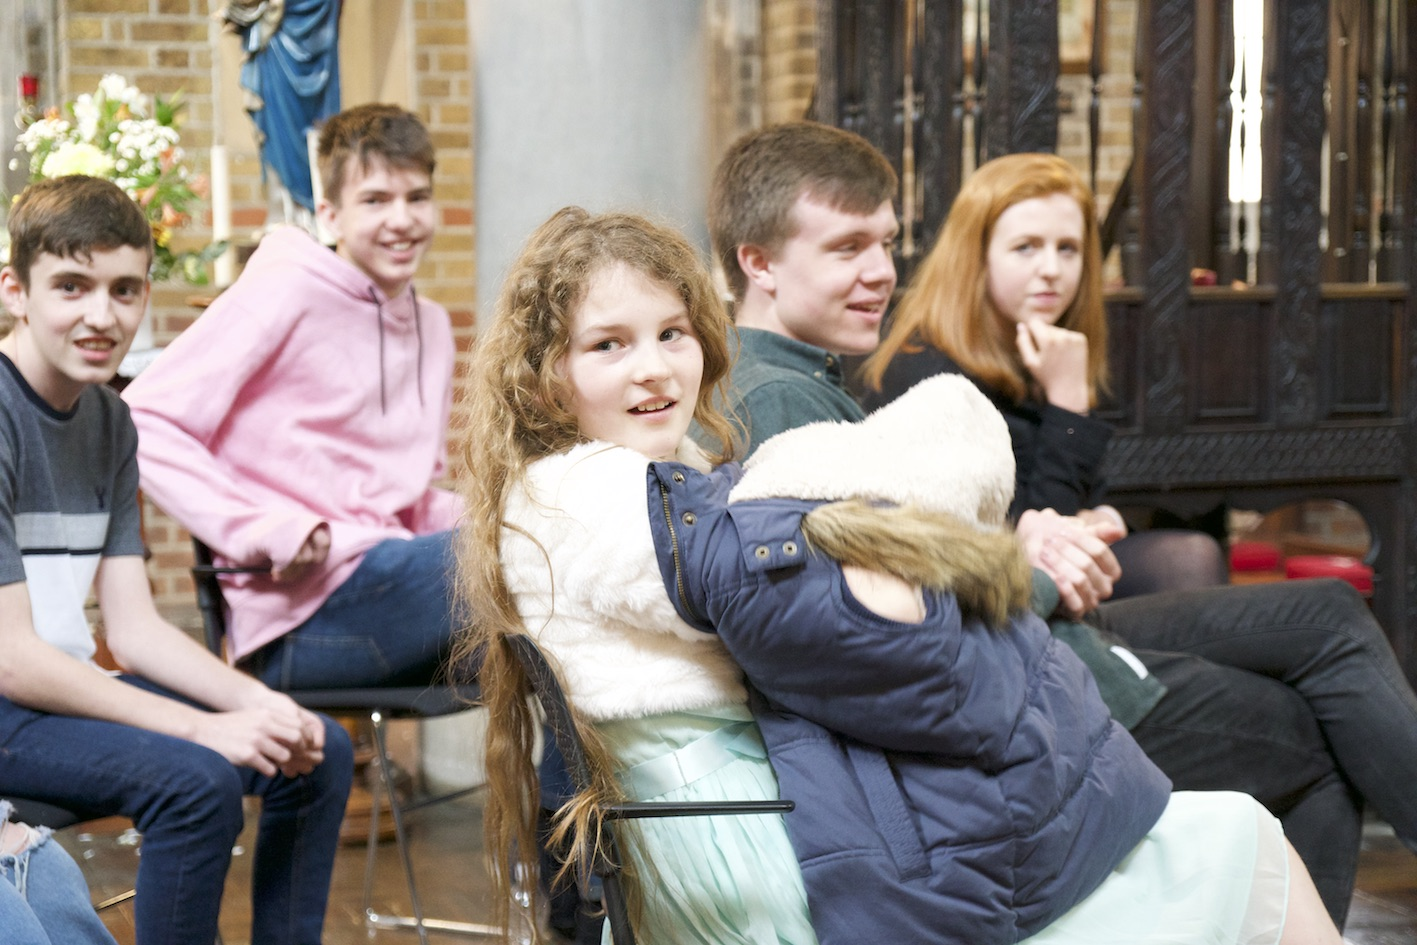 Youth Finalists - ORA Singers received applications from all across the UK for the 2019 Youth Composer Competition, selecting 10 overall finalists to be mentored and to write a new choral work for the professional ensemble. The selected finalists ages ranged from 11-17, all attending a UK state school. Finalists were given a choice of 3 Renaissance works by Lobo, Lassus and Rebelo, to base their new compositions on.The 2019 Youth Finalists were:Patrick Lappin (17, Lurgan College, Northern Ireland)Hannah Beech (17, Loreto Sixth Form College, Denton)Edward Atkin ( 15, Millthorpe School, York)Emily Pedersen (17, St John Fisher Catholic High School, Harrogate)Katie Styles (11, Wycombe Girl's High School, Maidenhead)Louis Wild (17, Prudhoe Community High School, Wylam)Laura Fitzgerald (17, Kesgrave High School Sixth Form, Kesgrave)Joshua Wheldon (16, North Hykeham Joint, Sixth Form College, Thurlby)Ben Gilchrist (15, Pate's Grammar School, Cheltenham)Yuvraj Sethia (16, The Priory Academy LSST).